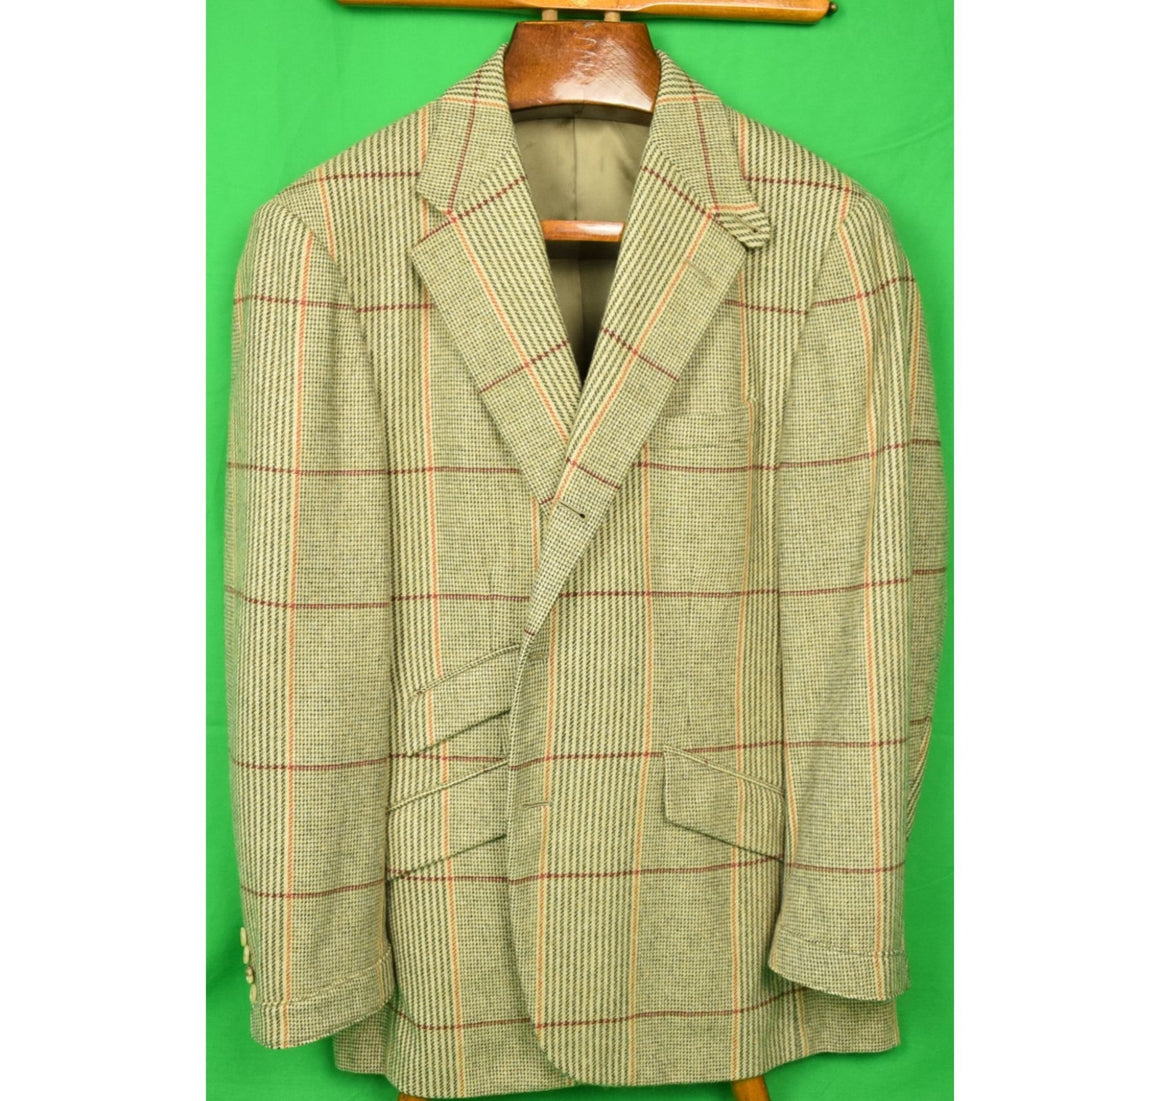 Ralph Lauren Purple Label English Russell Plaid Cashmere Jacket Sz 42R